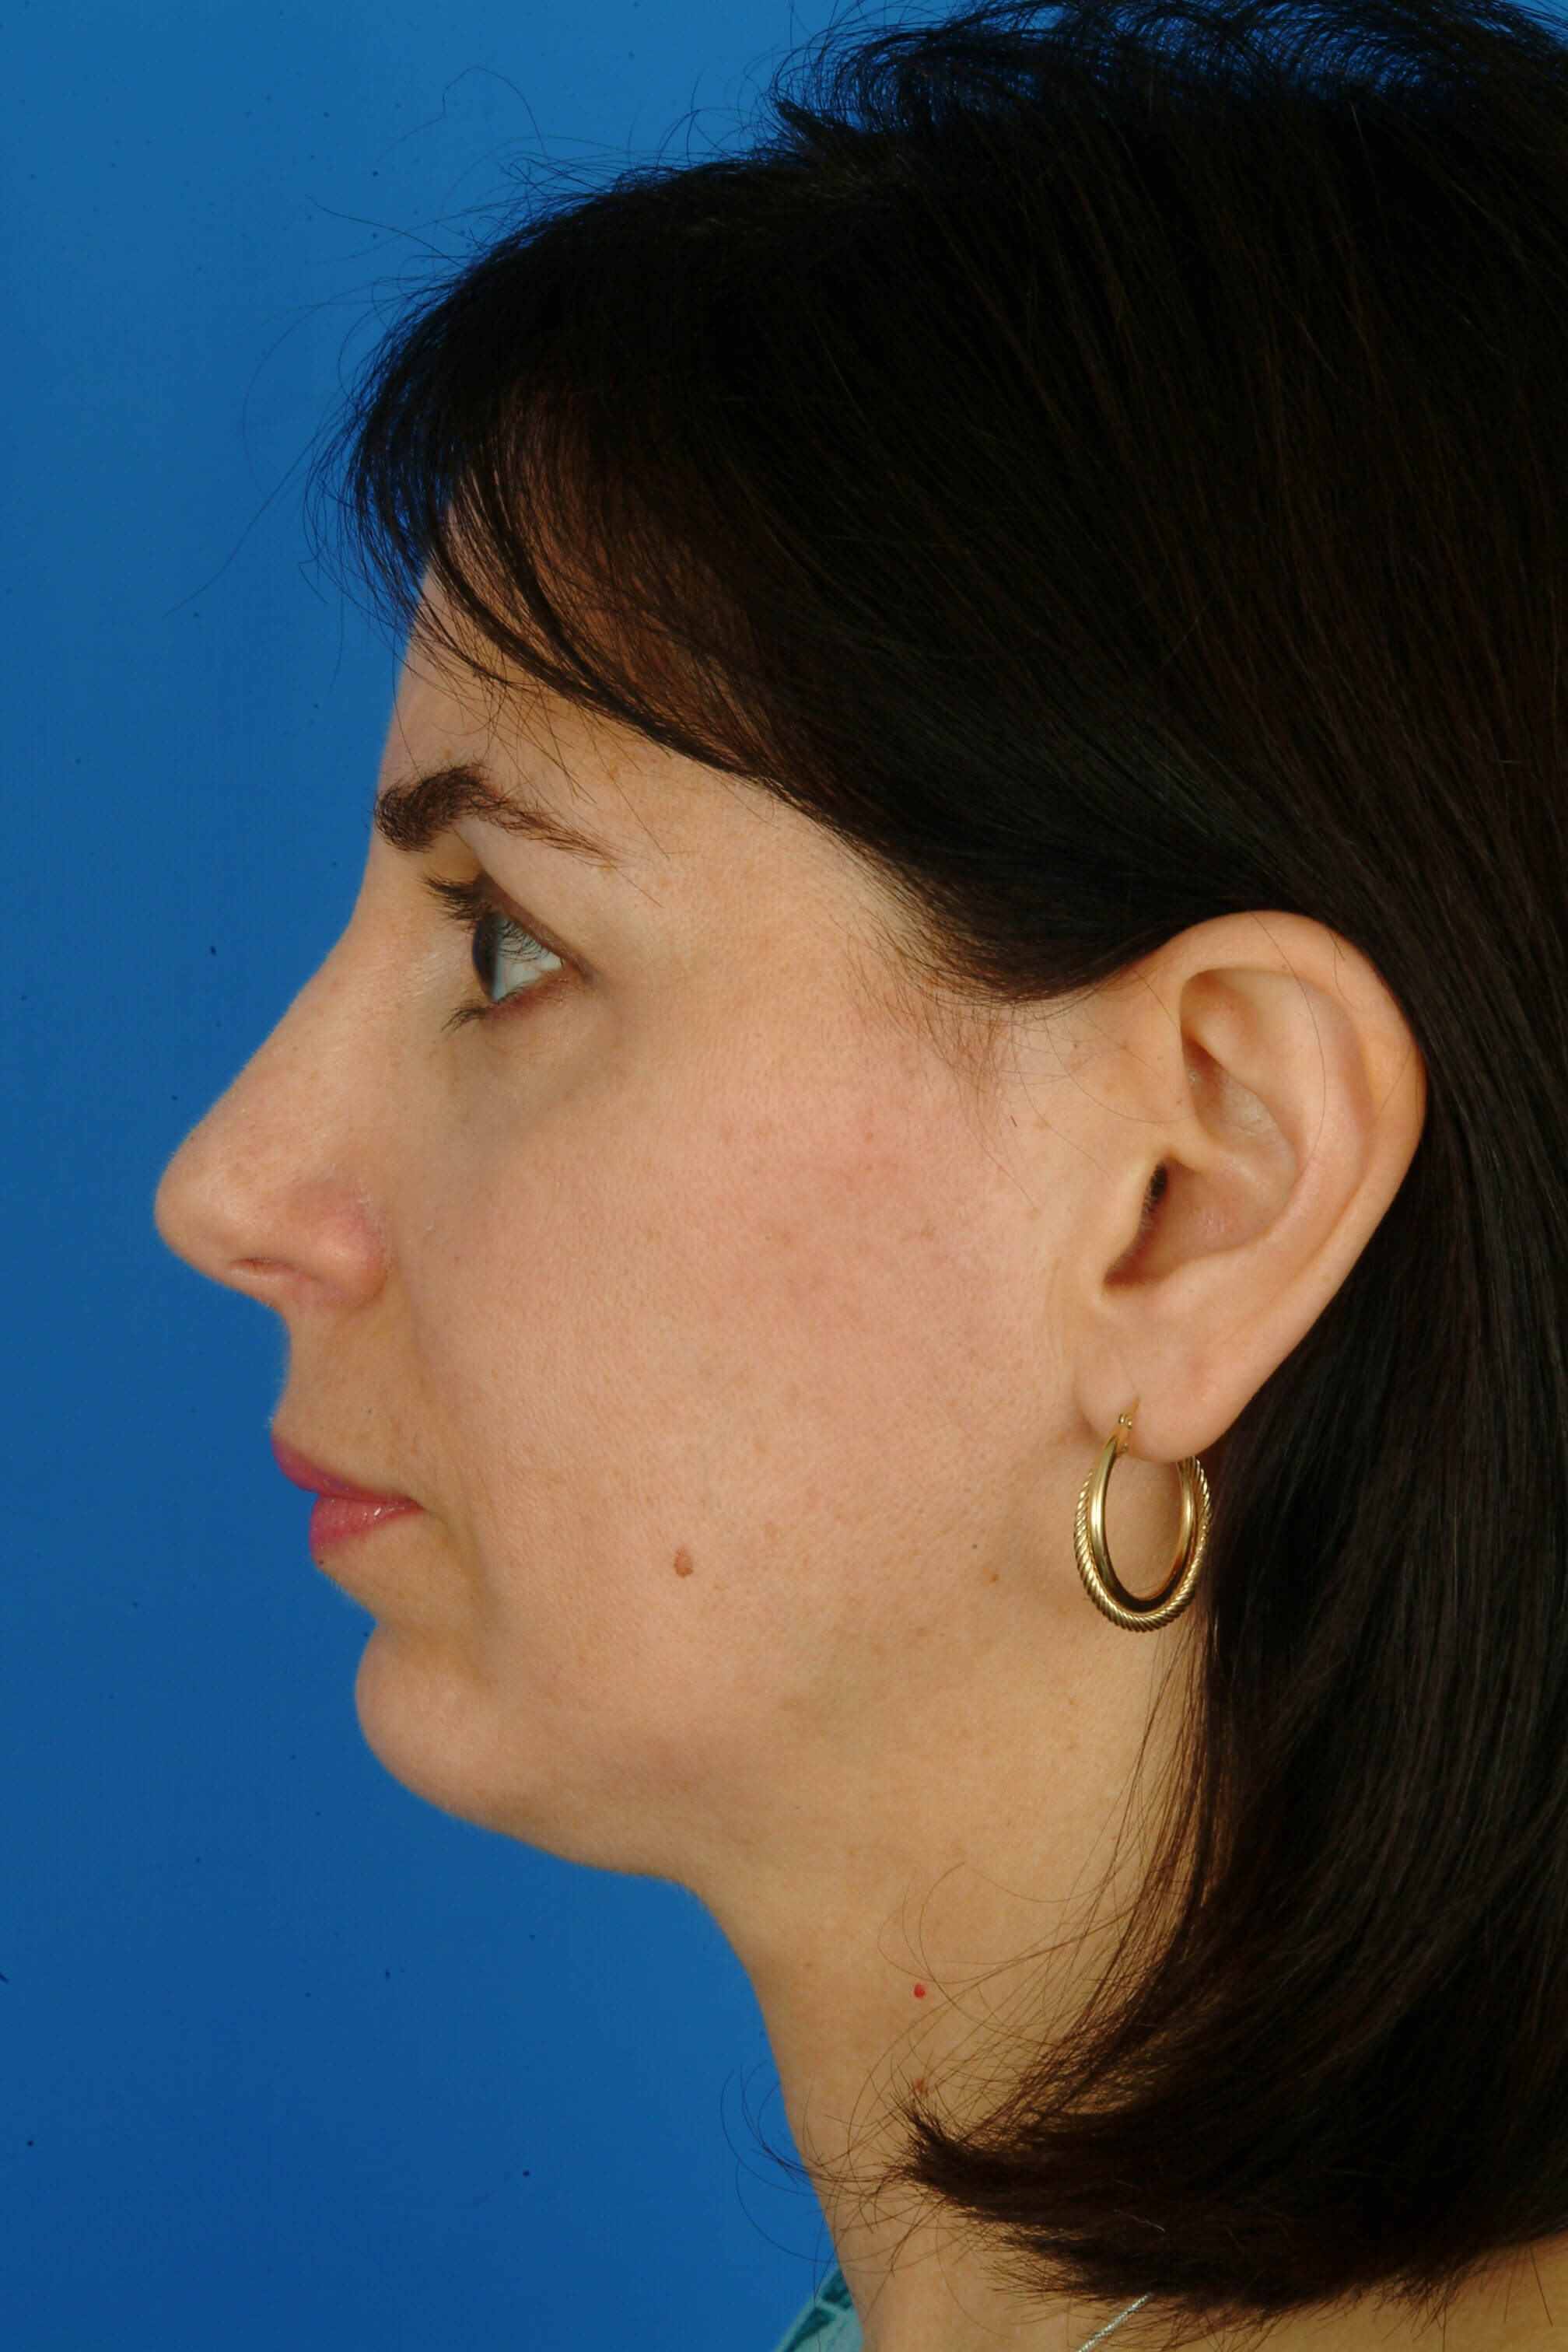 Profile View 3 Months After Rhinoplasty